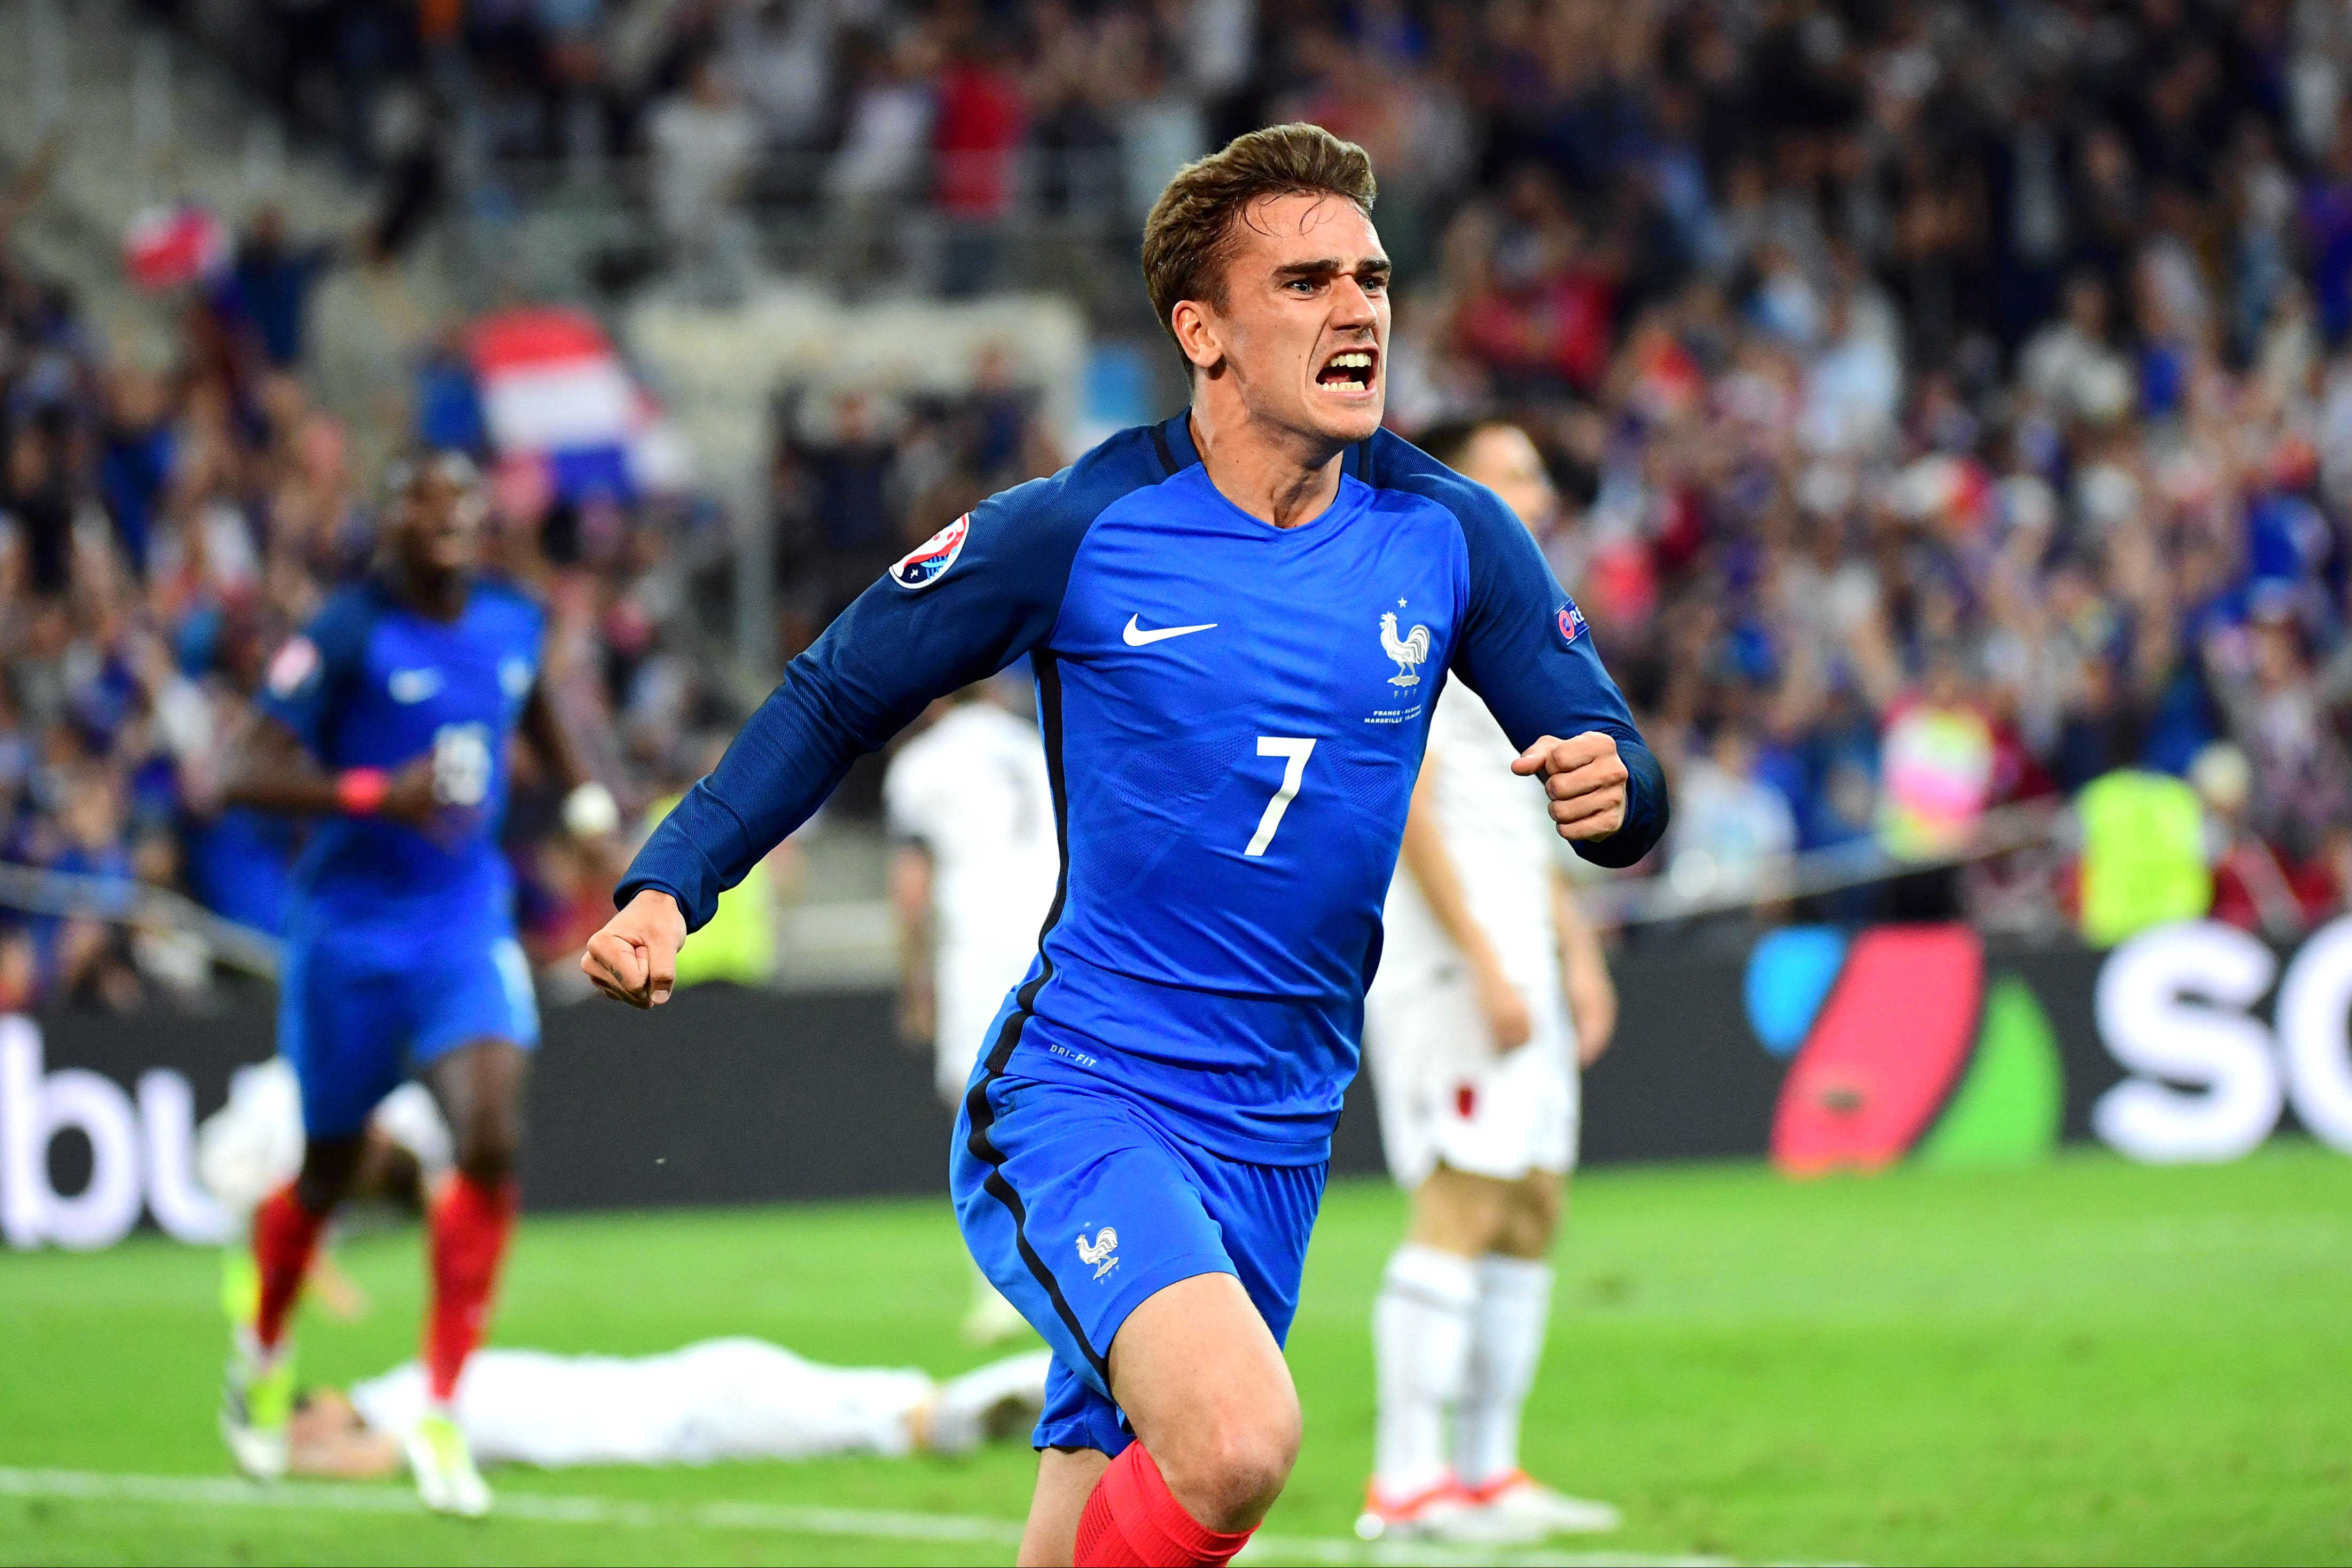 01/09/2021· after two years away, antoine griezmann has returned to atlético madrid, where he scored 94 goals in 180 spanish liga appearances between 2014 and … Euro 2016 : le coup de tête d'Antoine Griezmann contre l ...